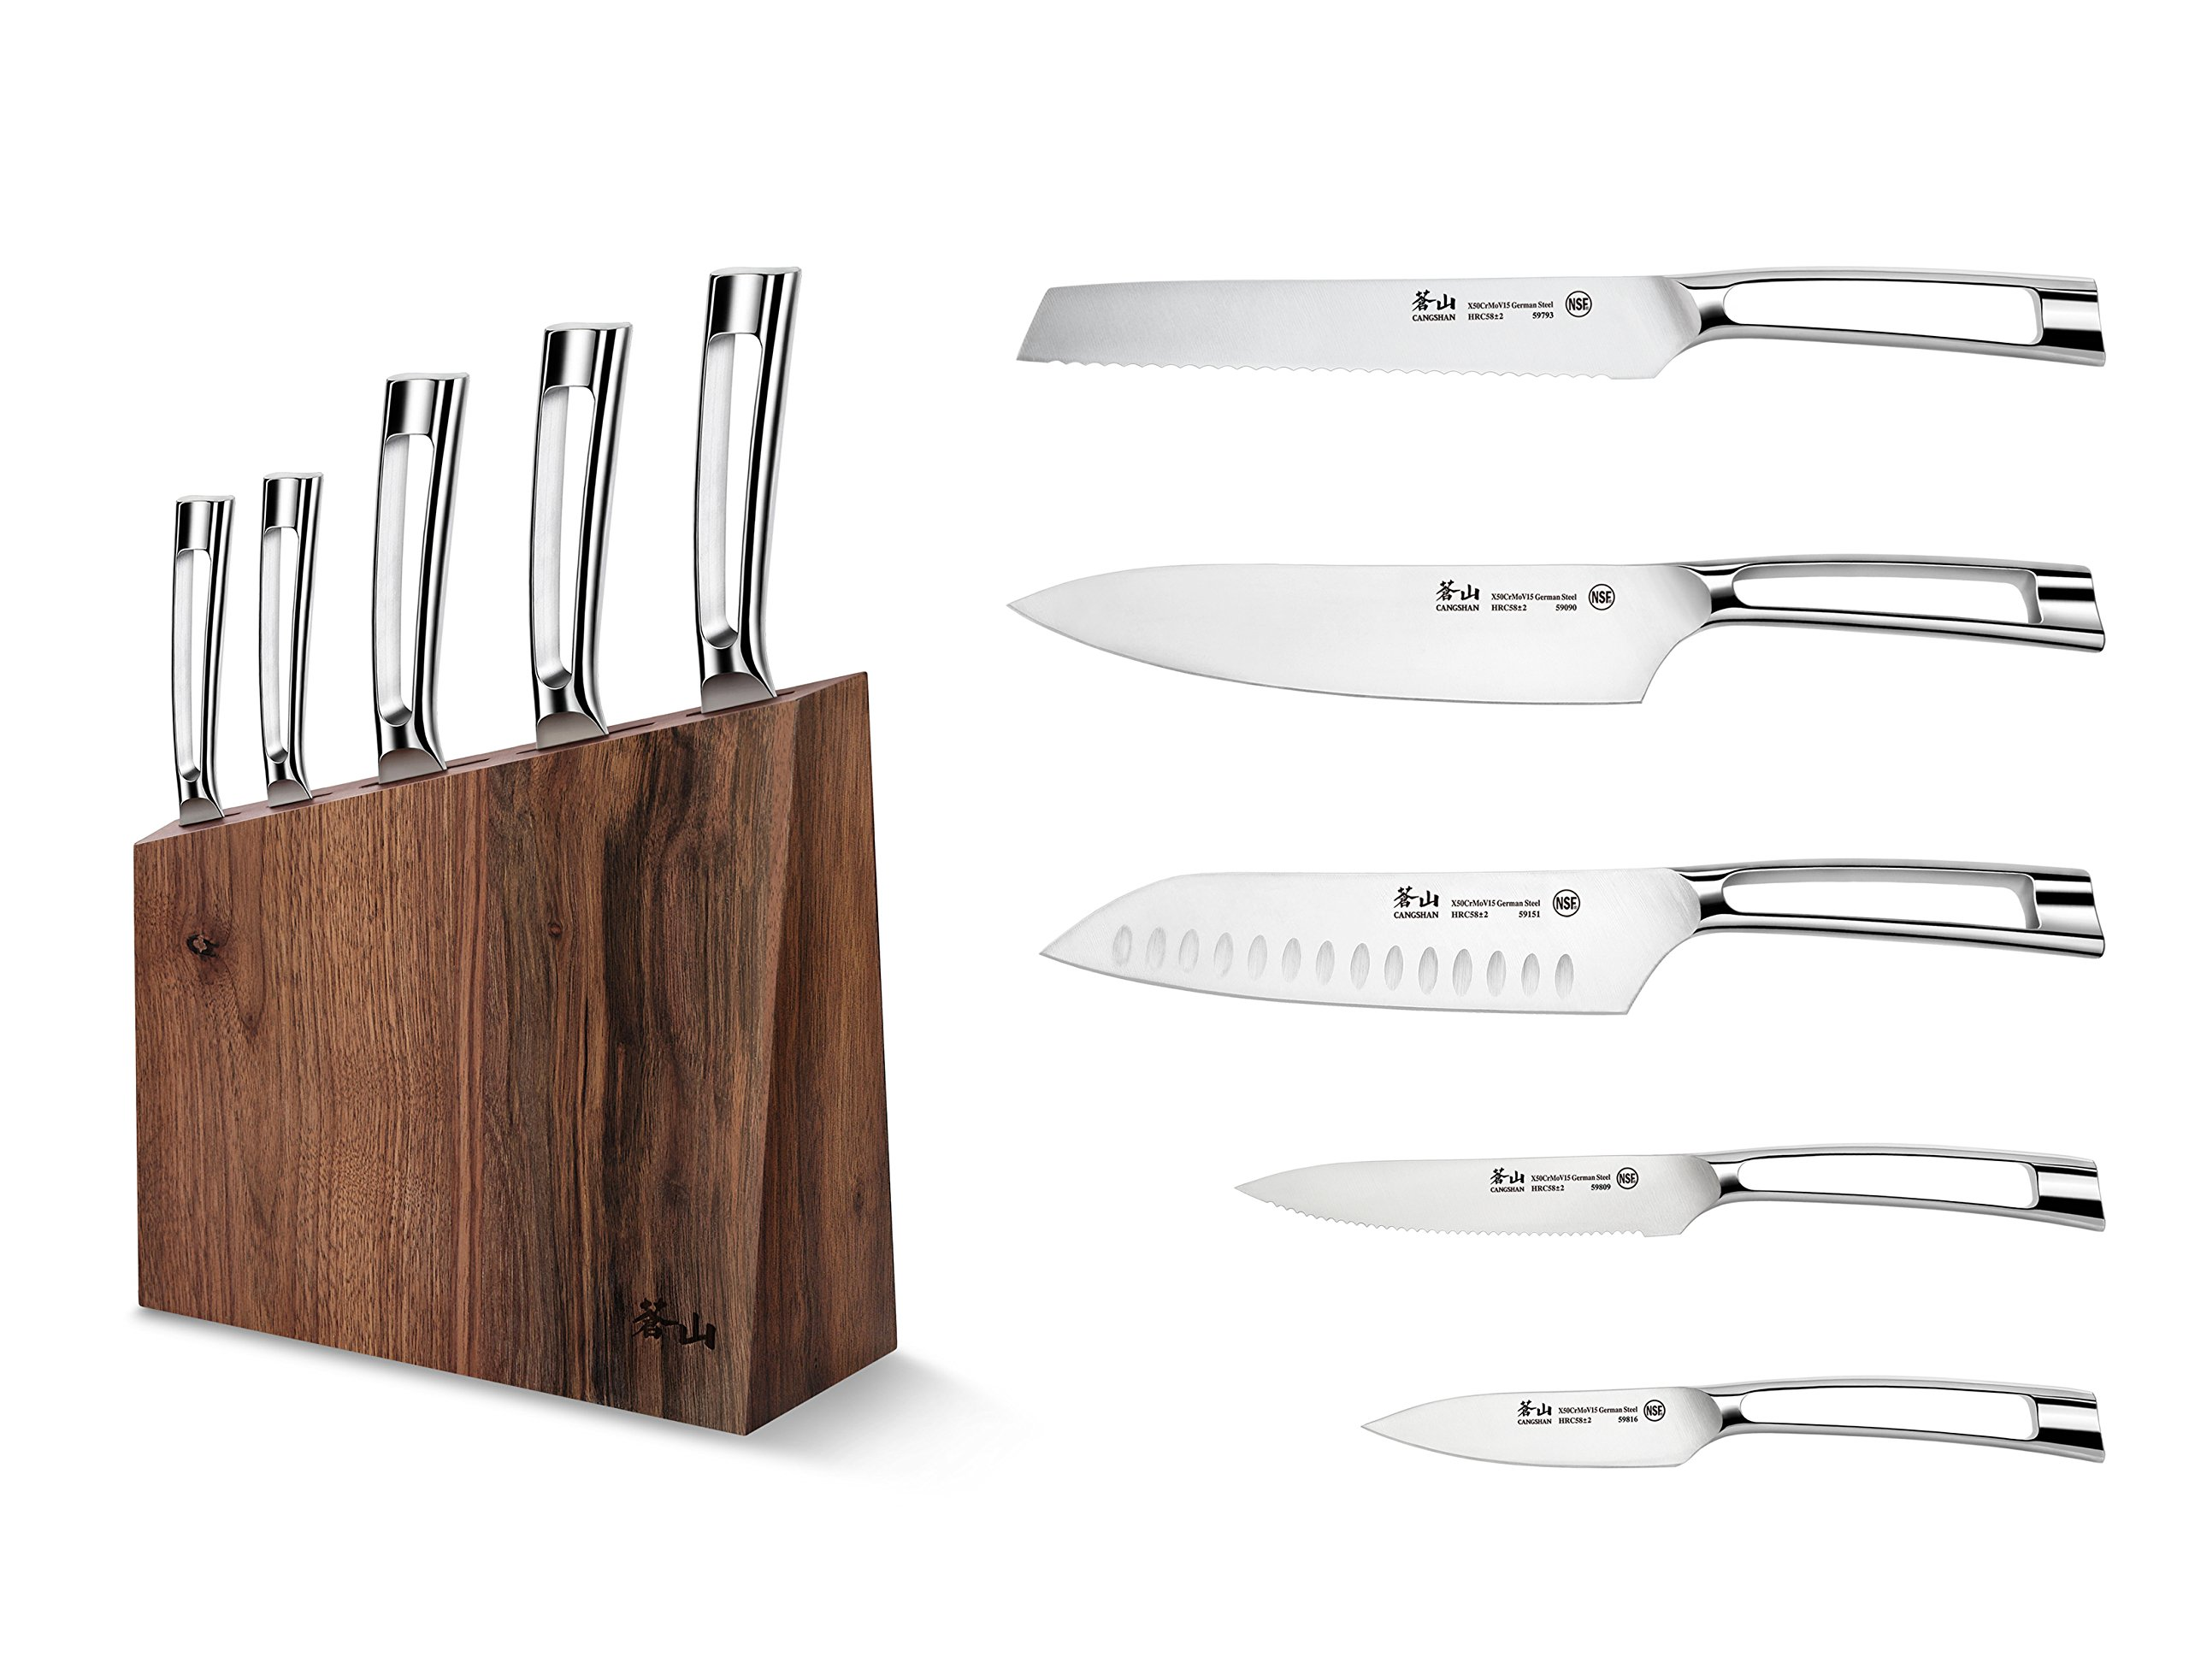 Cangshan N1 Series 61017 6-Piece German Steel Forged Knife Block Set, Walnut Block by Cangshan (Image #1)